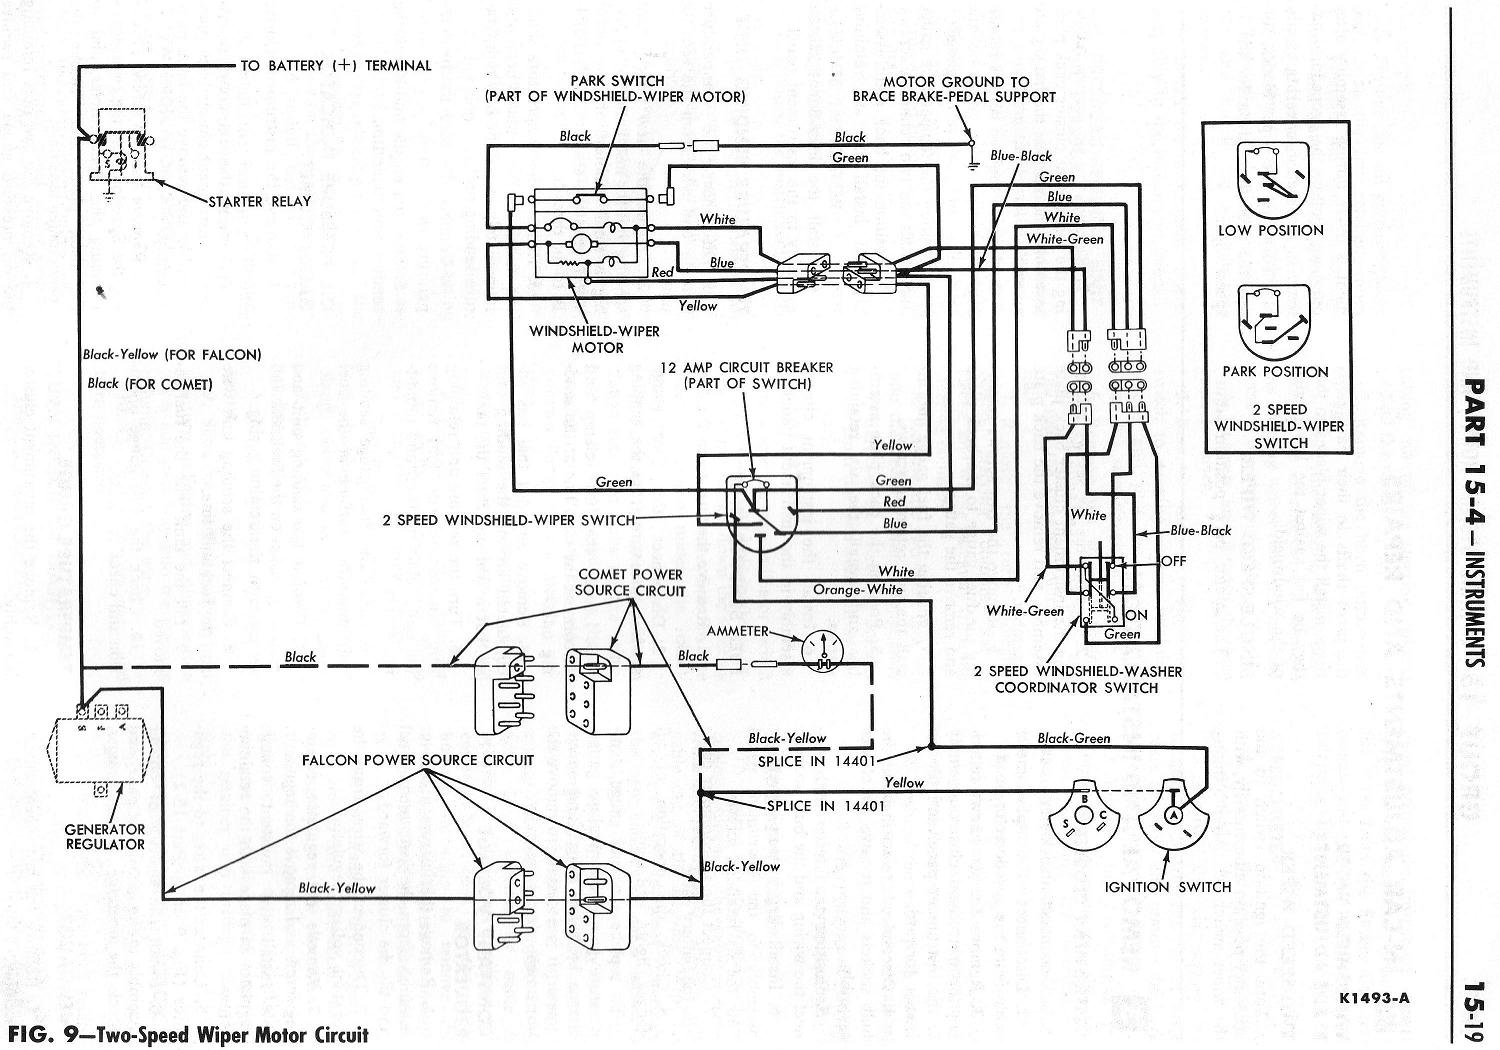 1993 Mazda Miata Fuse Box Diagram in addition 2003 Cadillac Deville Oil Pressure Switch Location further 1999 Ford Ranger Fuel Pump Relay Location also RepairGuideContent further Wiper Motor Wiring Diagram For 1995 Windstar. on 03 vw beetle headlight relay